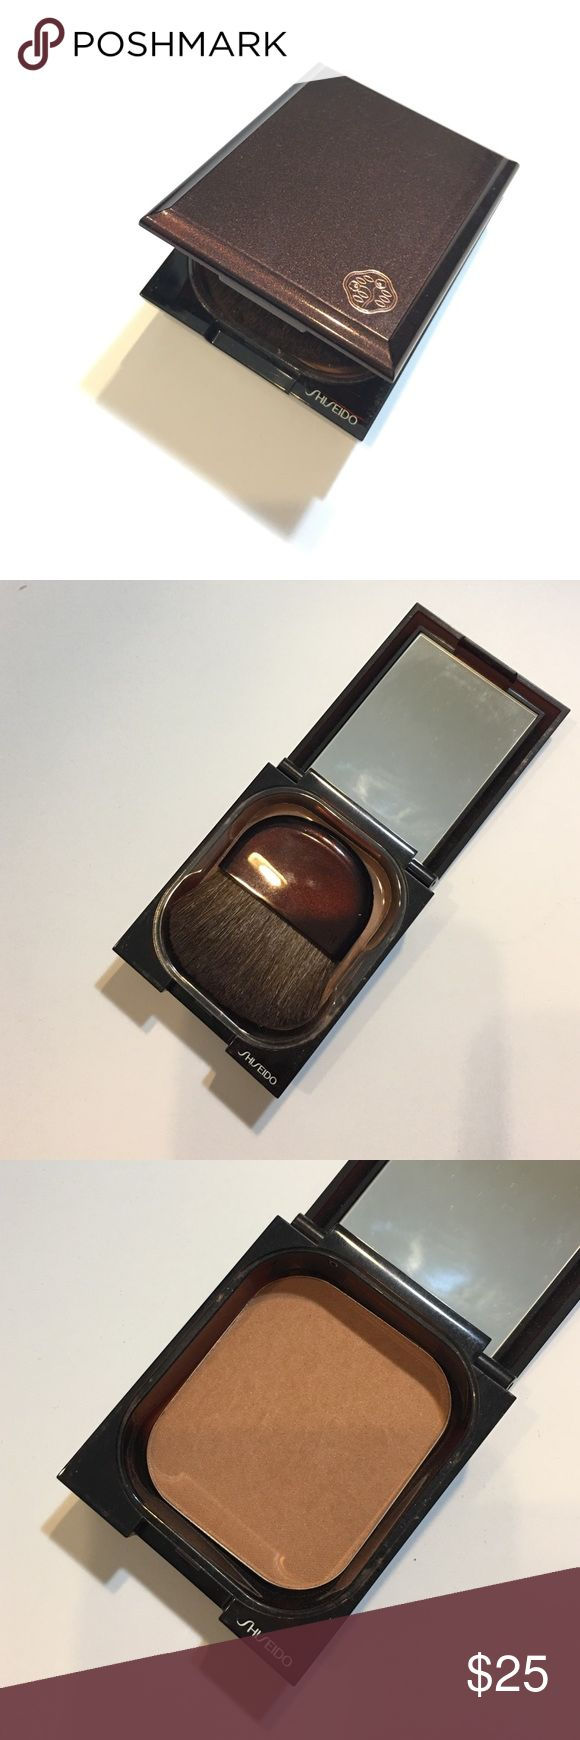 Shiseido Bronzer Oil Free in Shade Light Shiseido Bronzer in #1 Light. Only swatched. Never used. Makeup Bronzer